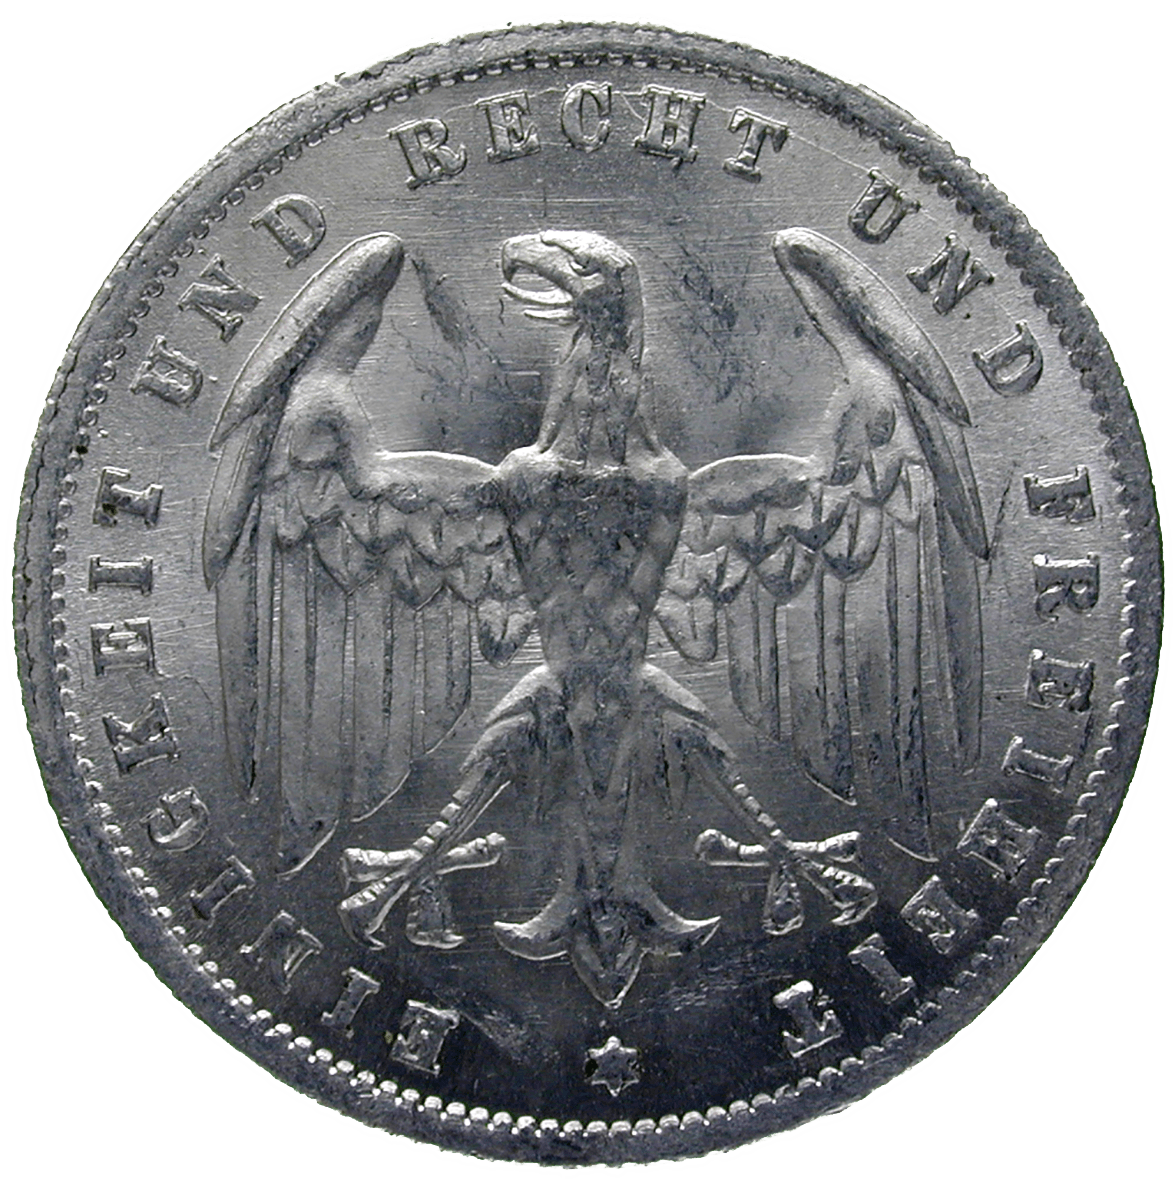 German Empire, Weimar Republic, 500 Mark 1923 (reverse)